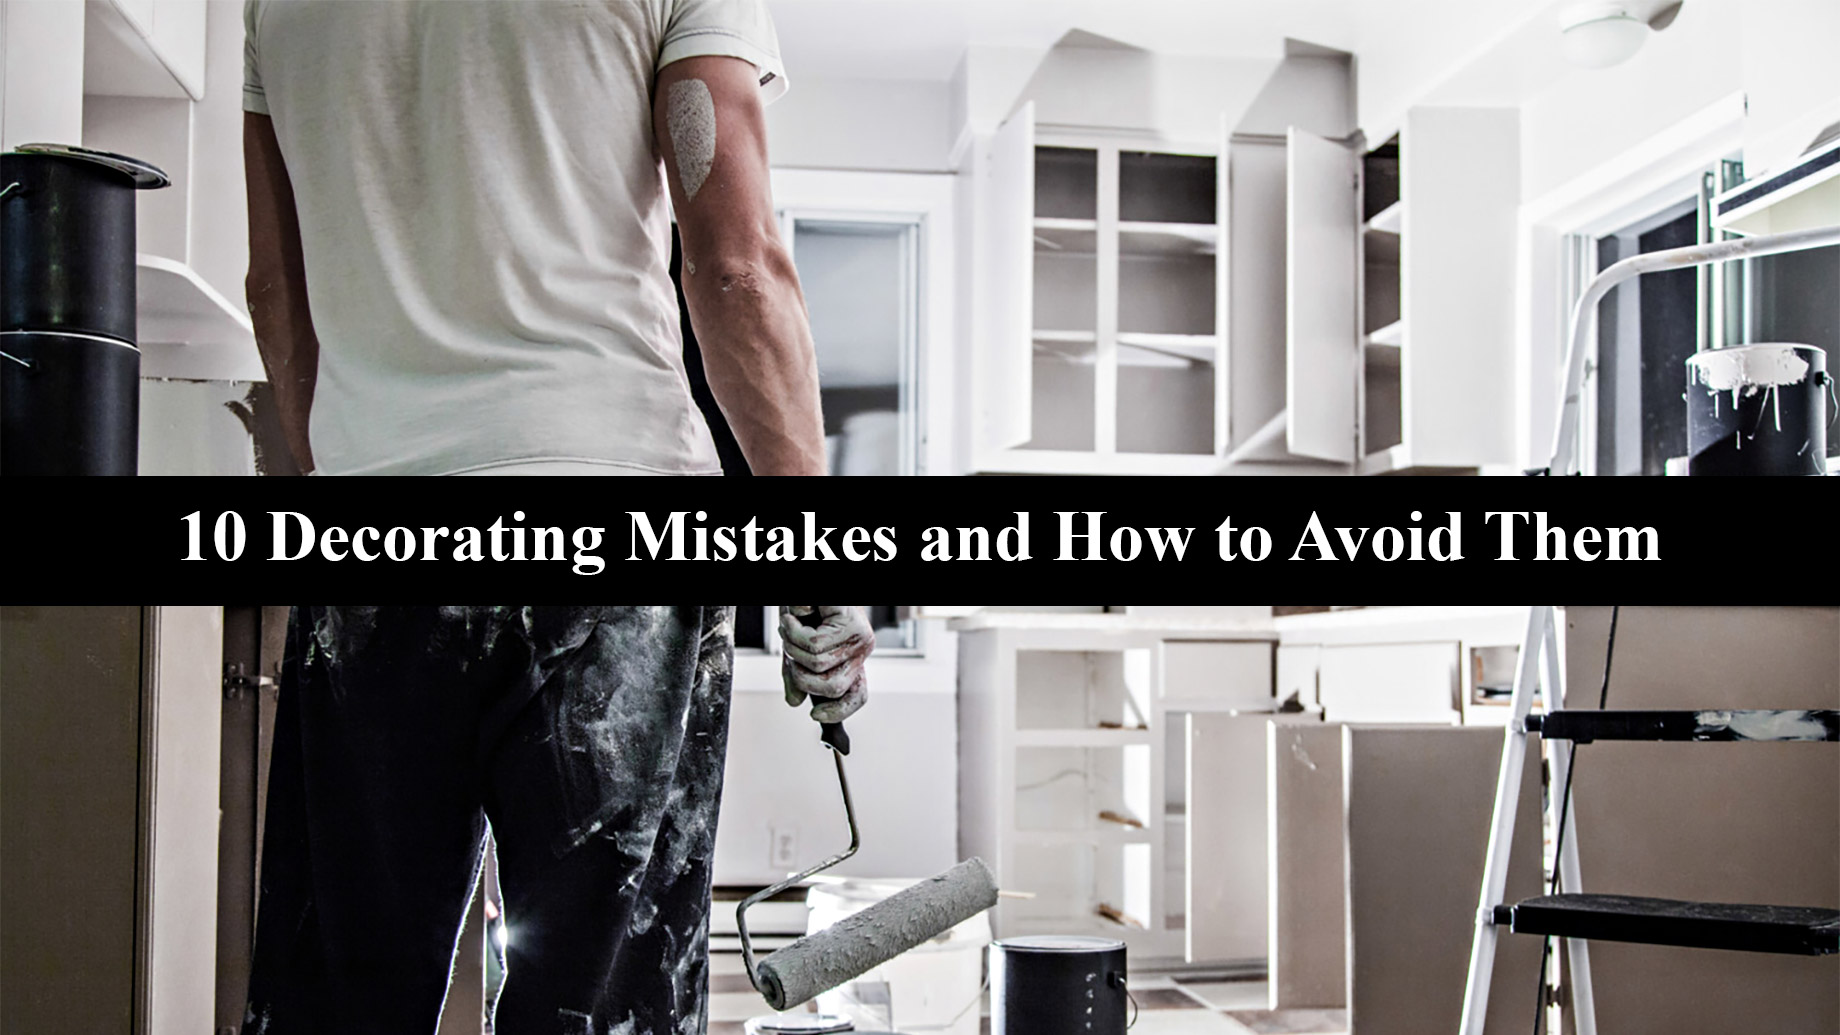 10 Decorating Mistakes and How to Avoid Them